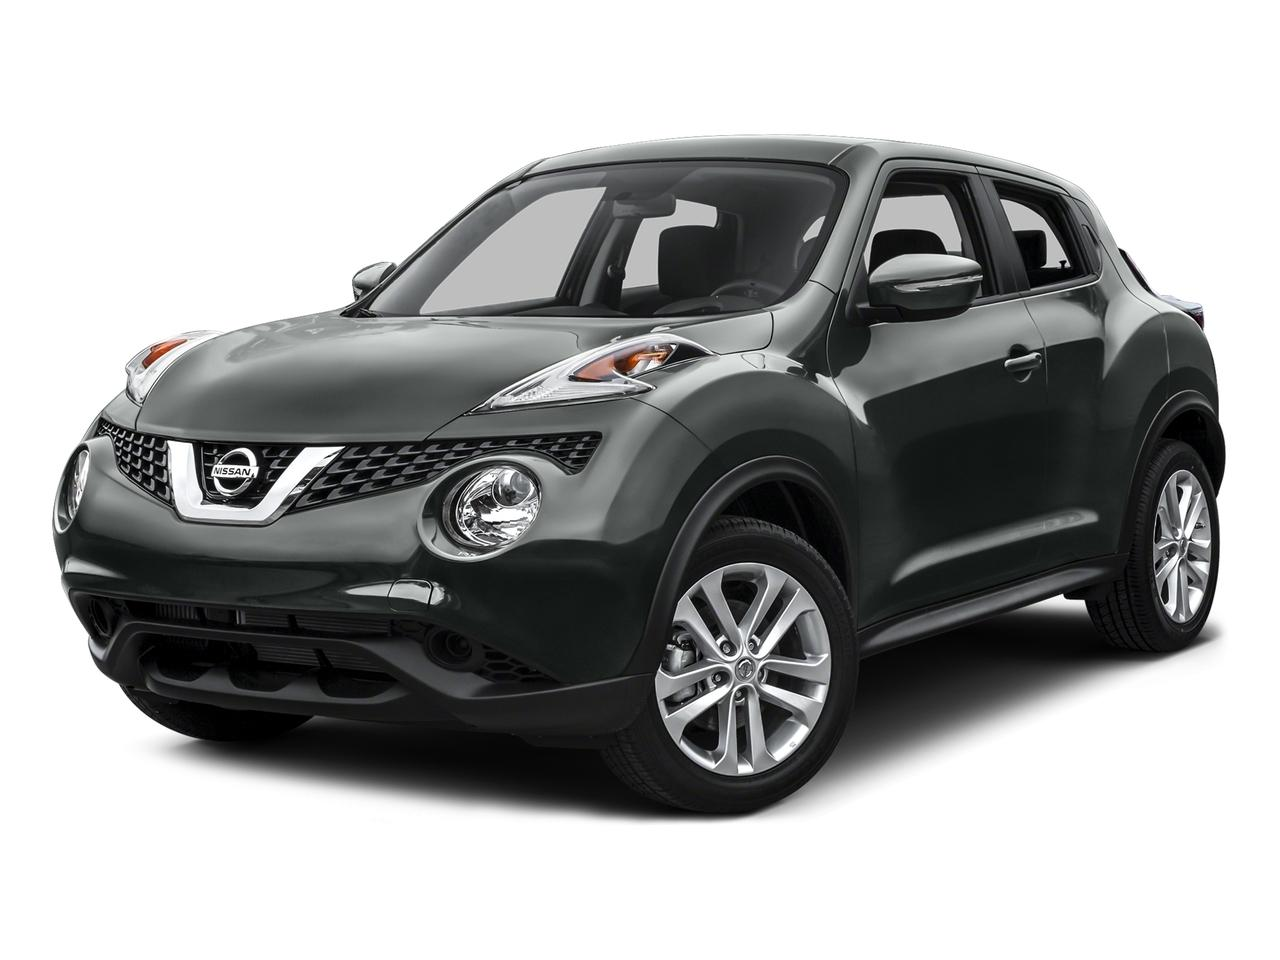 2016 Nissan JUKE Vehicle Photo in Muncy, PA 17756